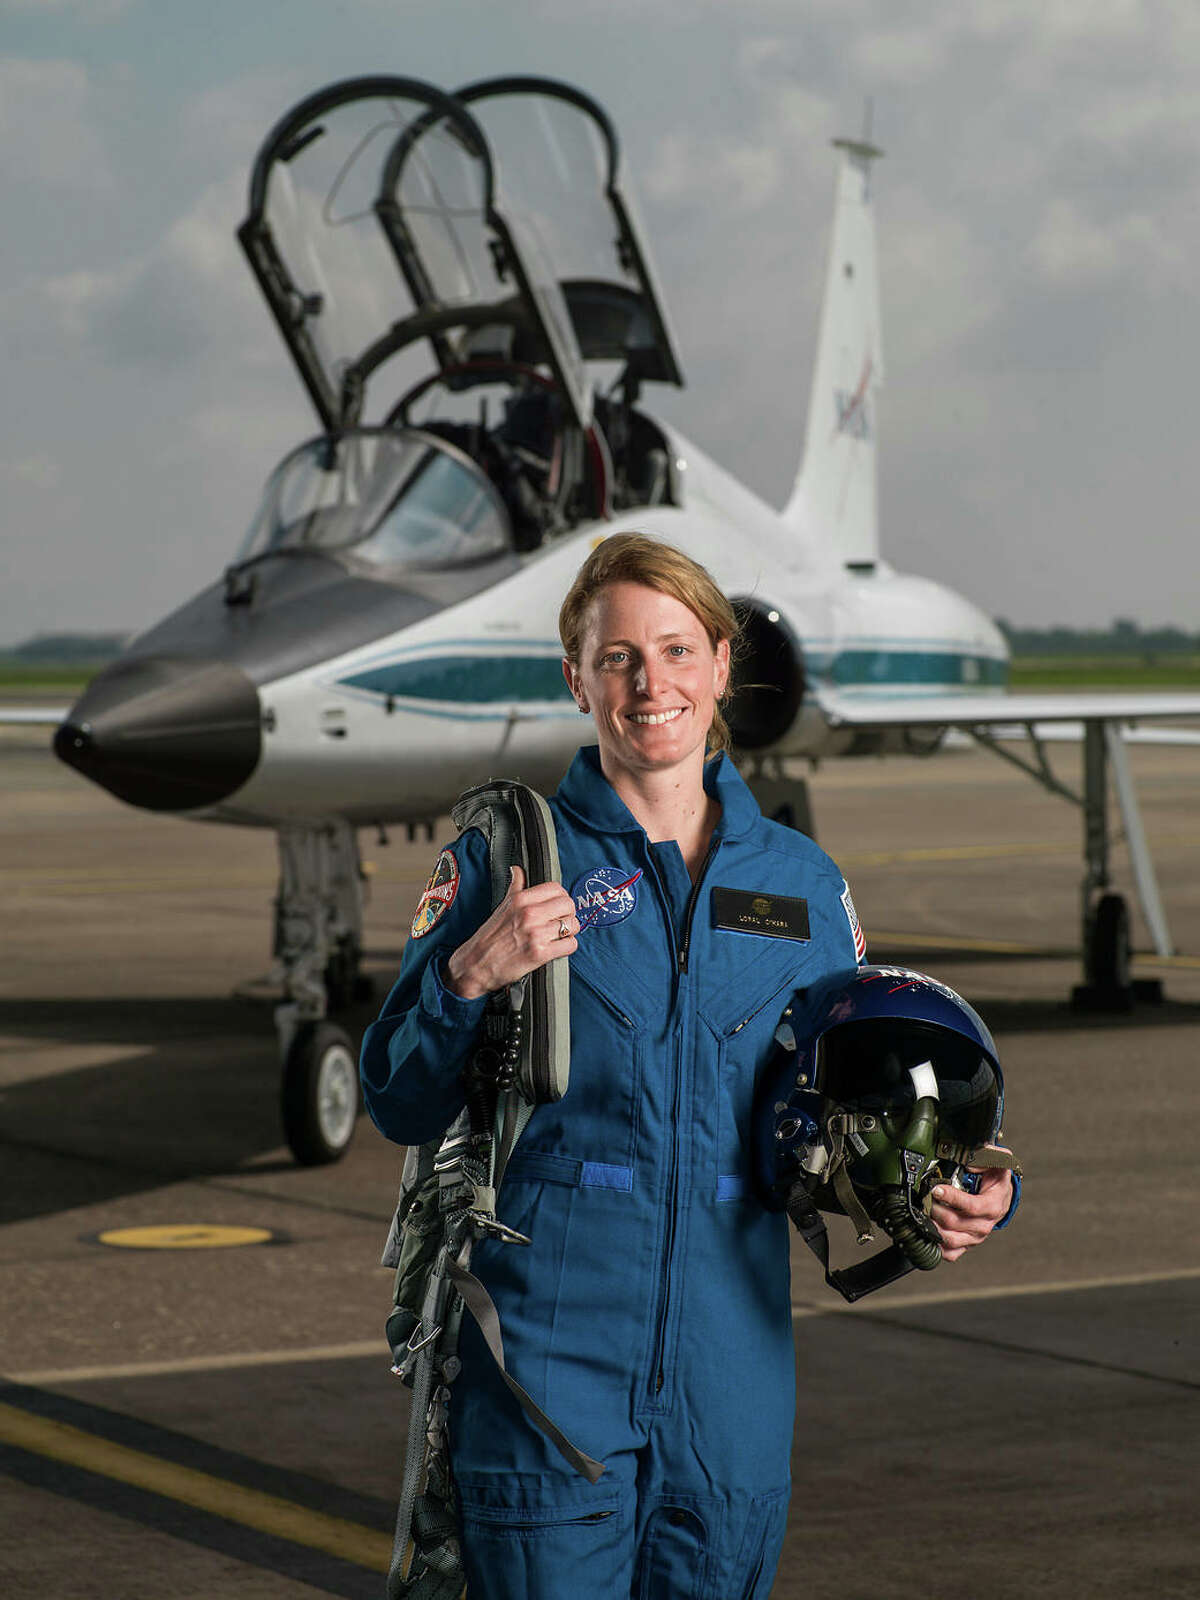 Loral O'Hara, 34, is the second Houstonian in NASA's history to be selected as a member of an astronaut candidate class. She'll report to the Johnson Space Center in August. Photo provided by NASA.